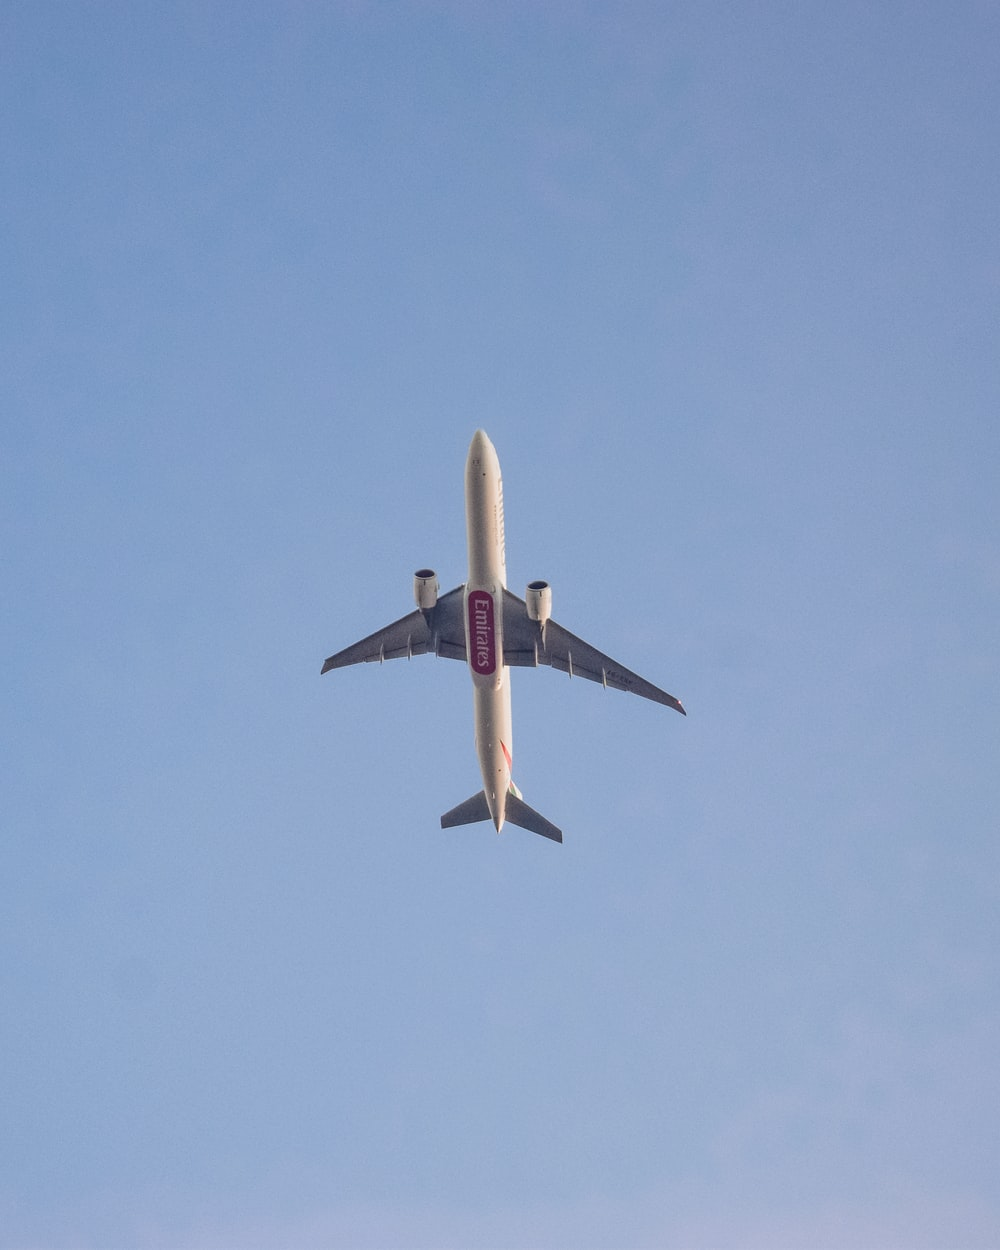 white and red airplane in mid air during daytime